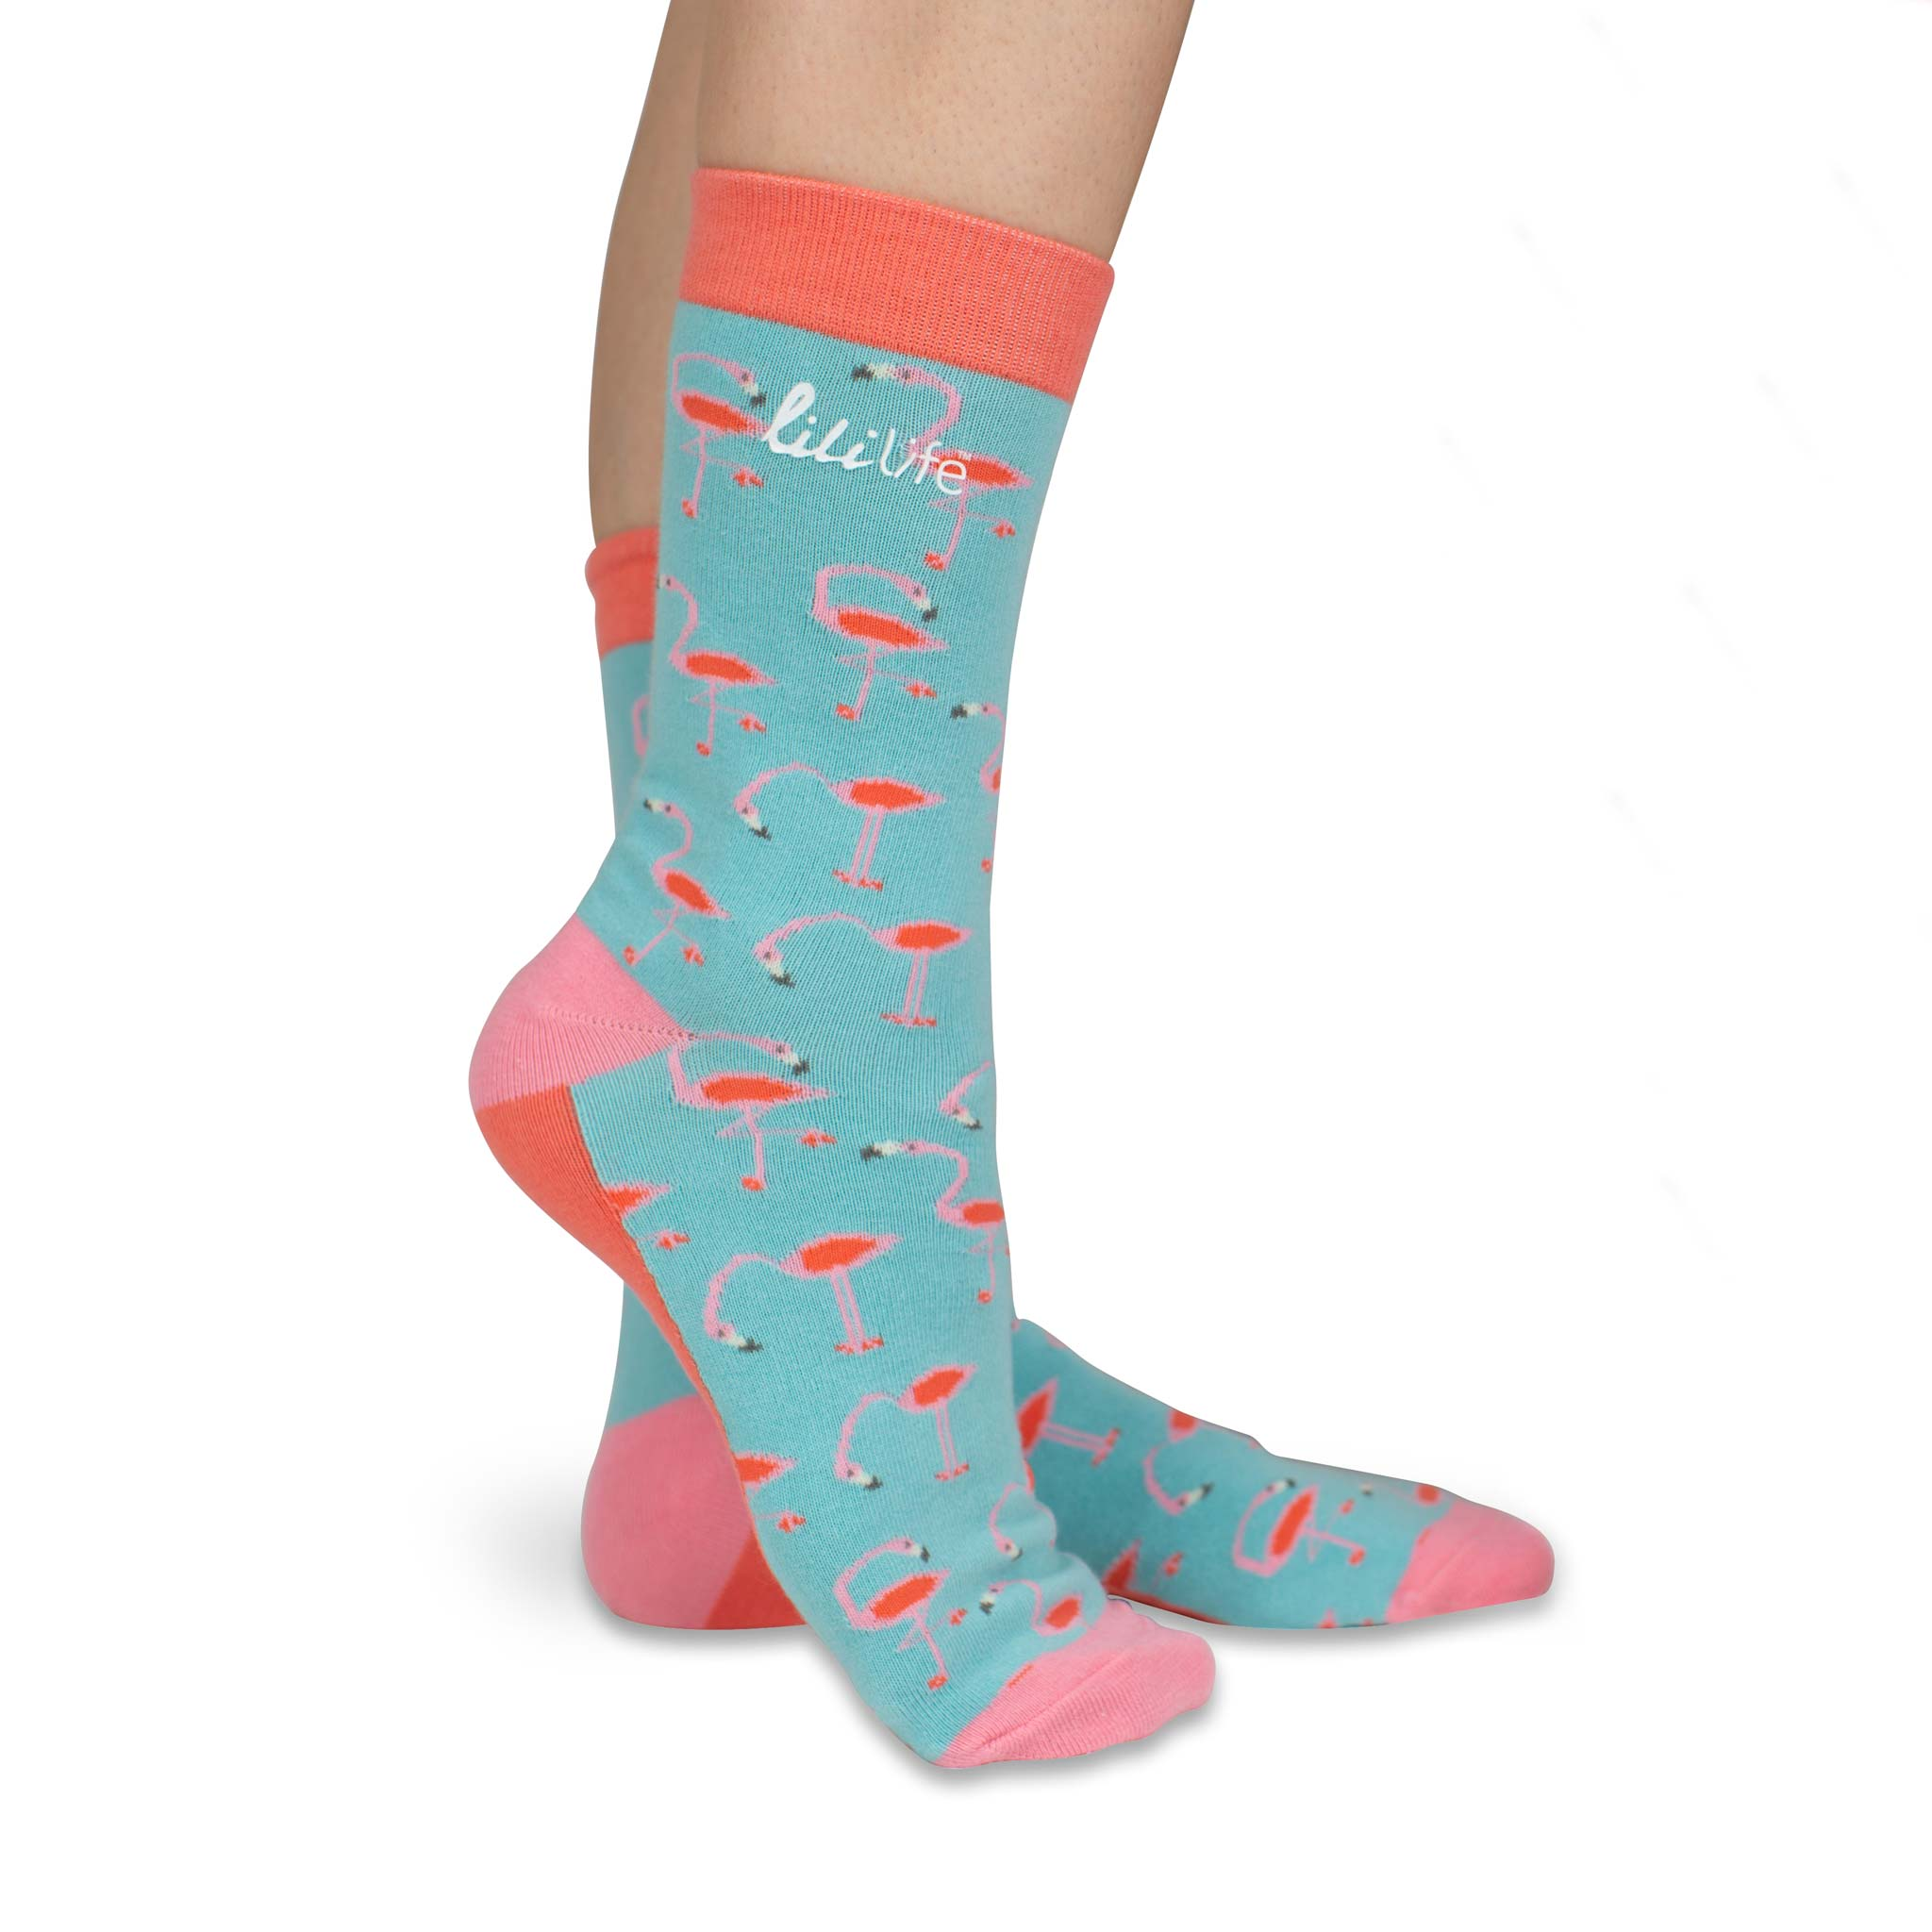 H 'n' H - Retro Flamingo Socks